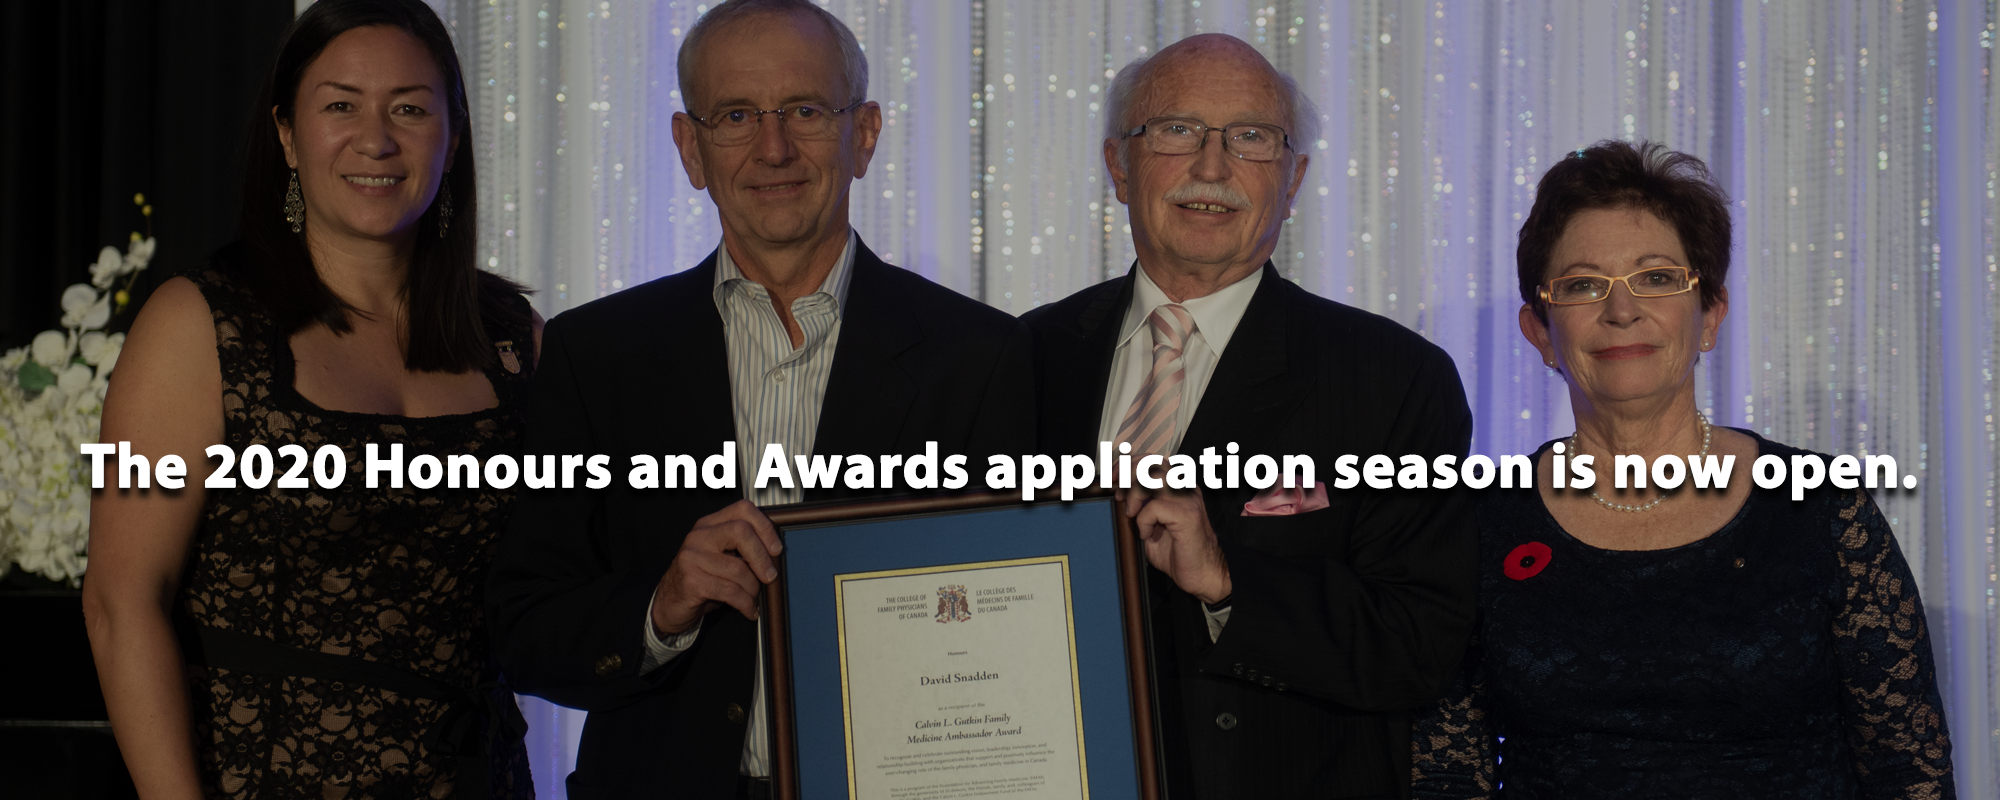 The 2020 Honours and Awards application season is now open.